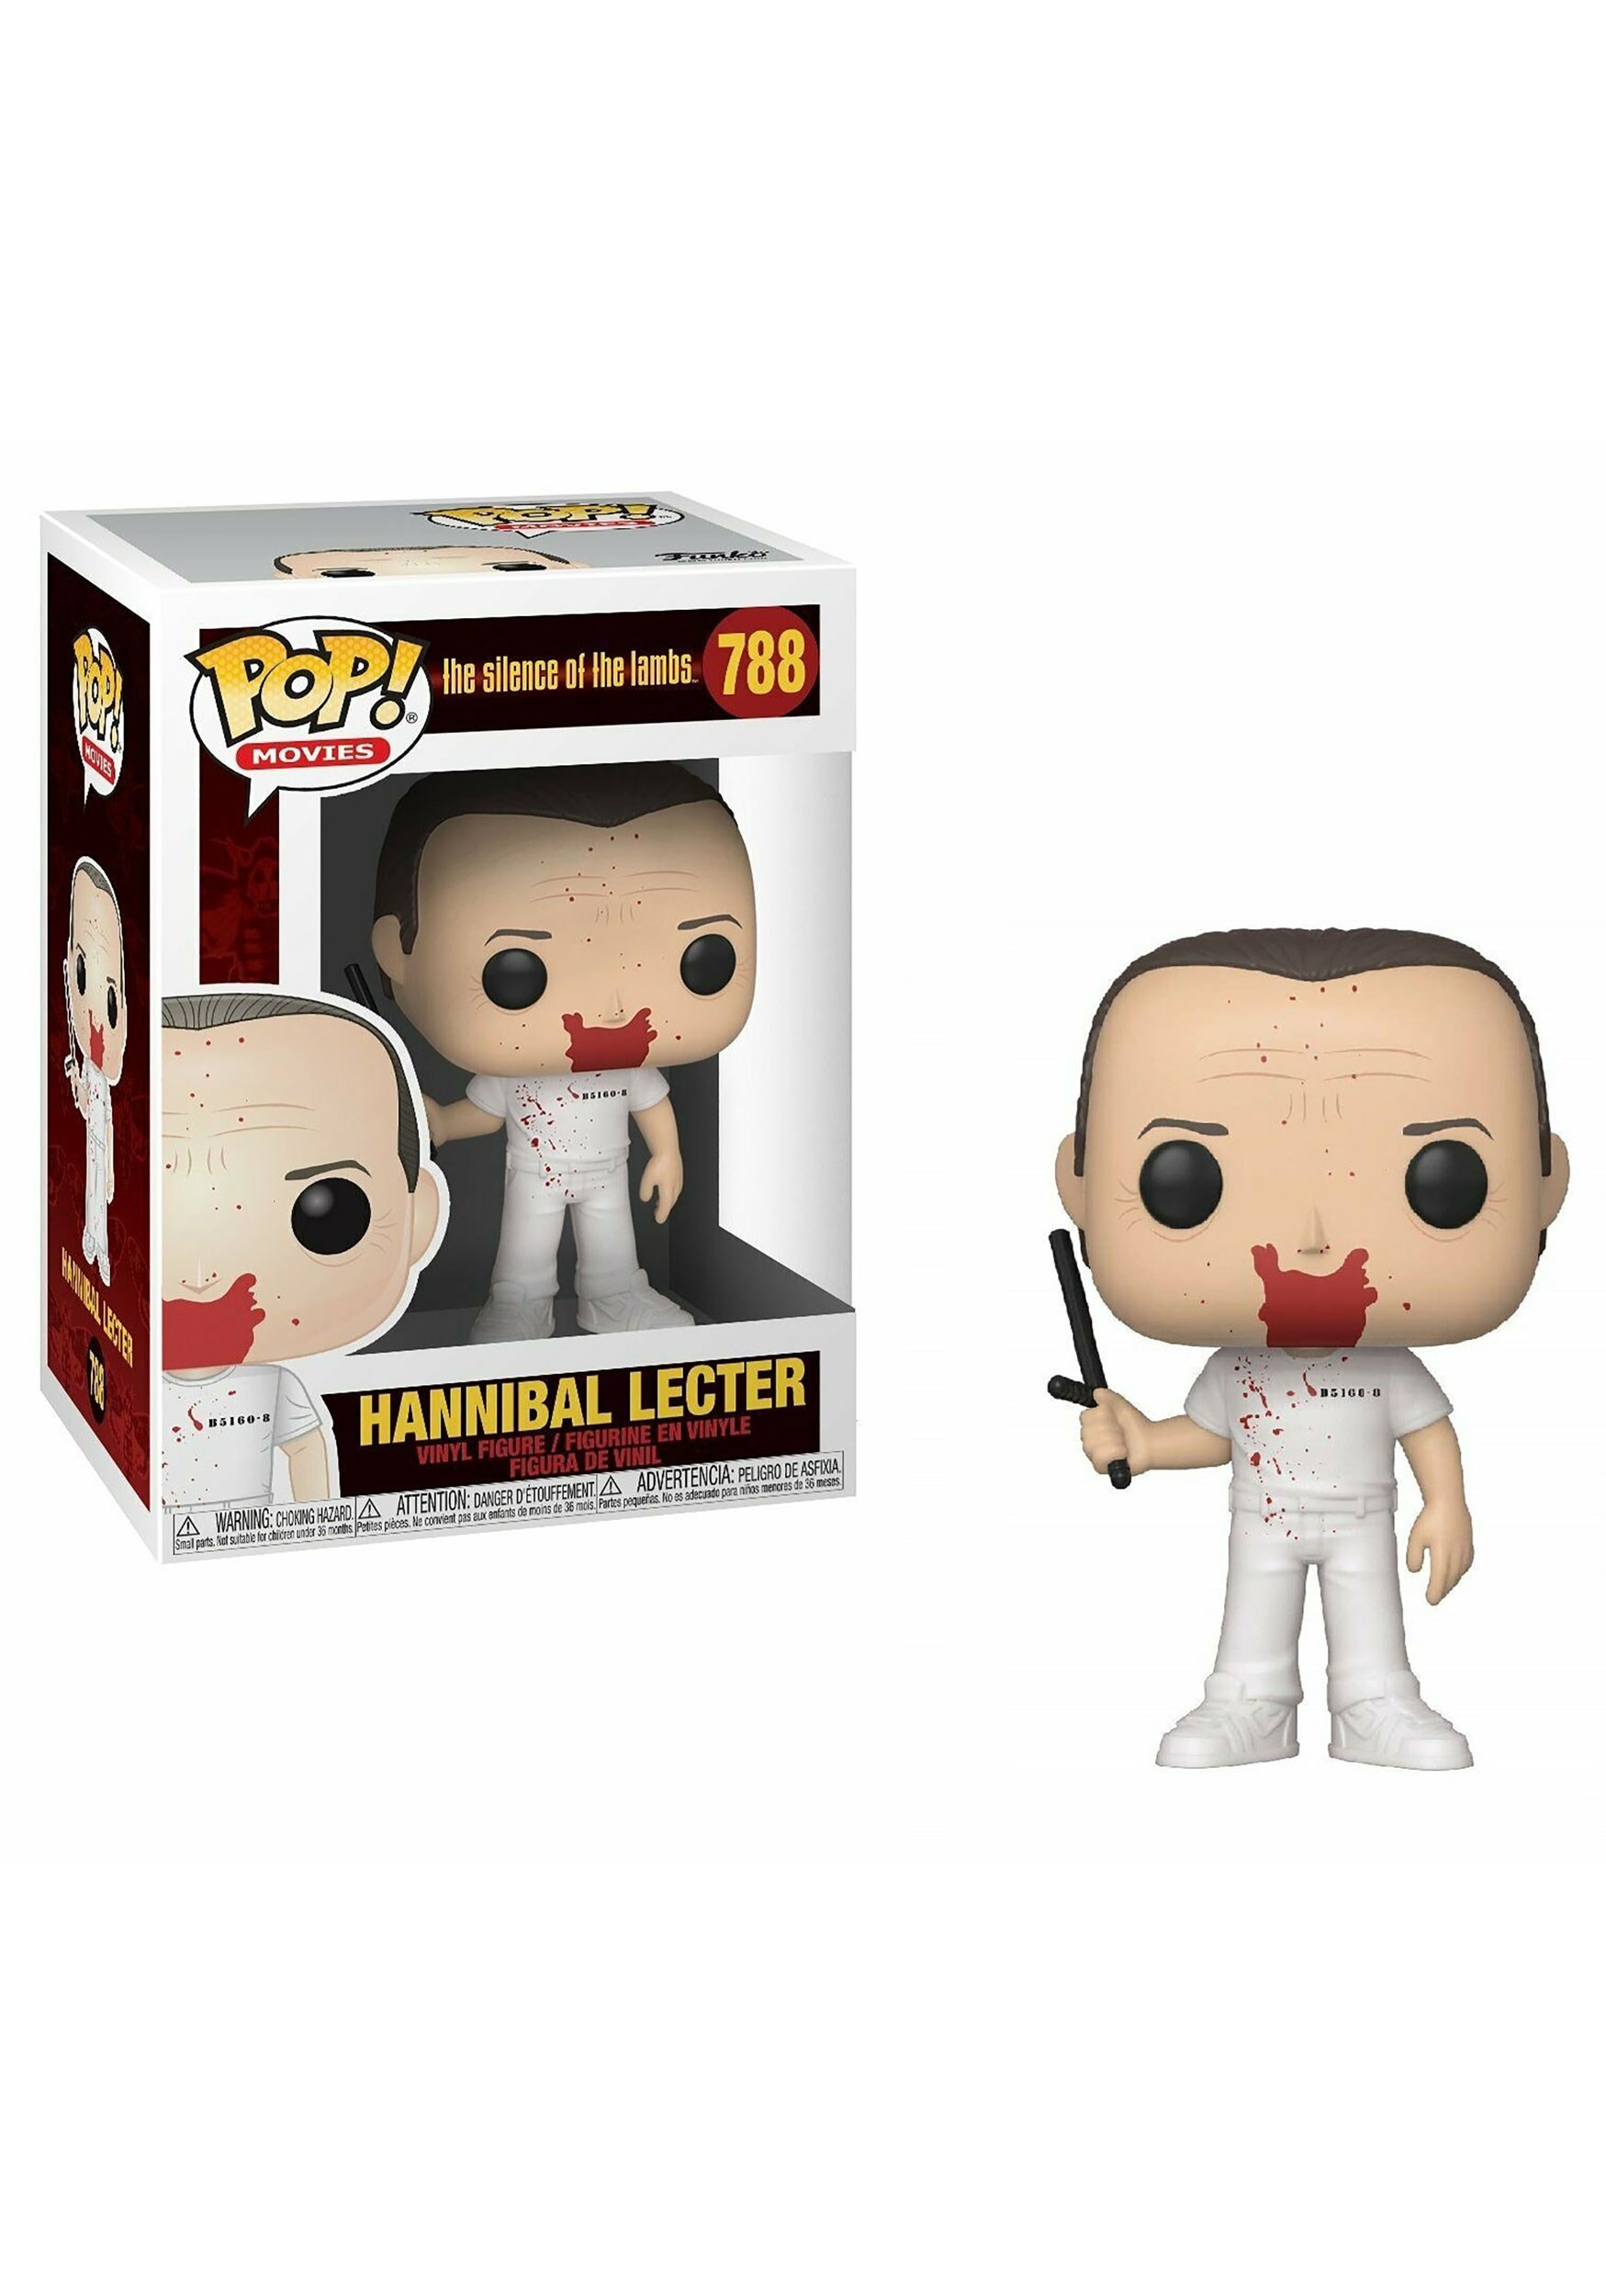 Hannibal Lecter The Silence of the Lambs Movies Vinyl Figure POP